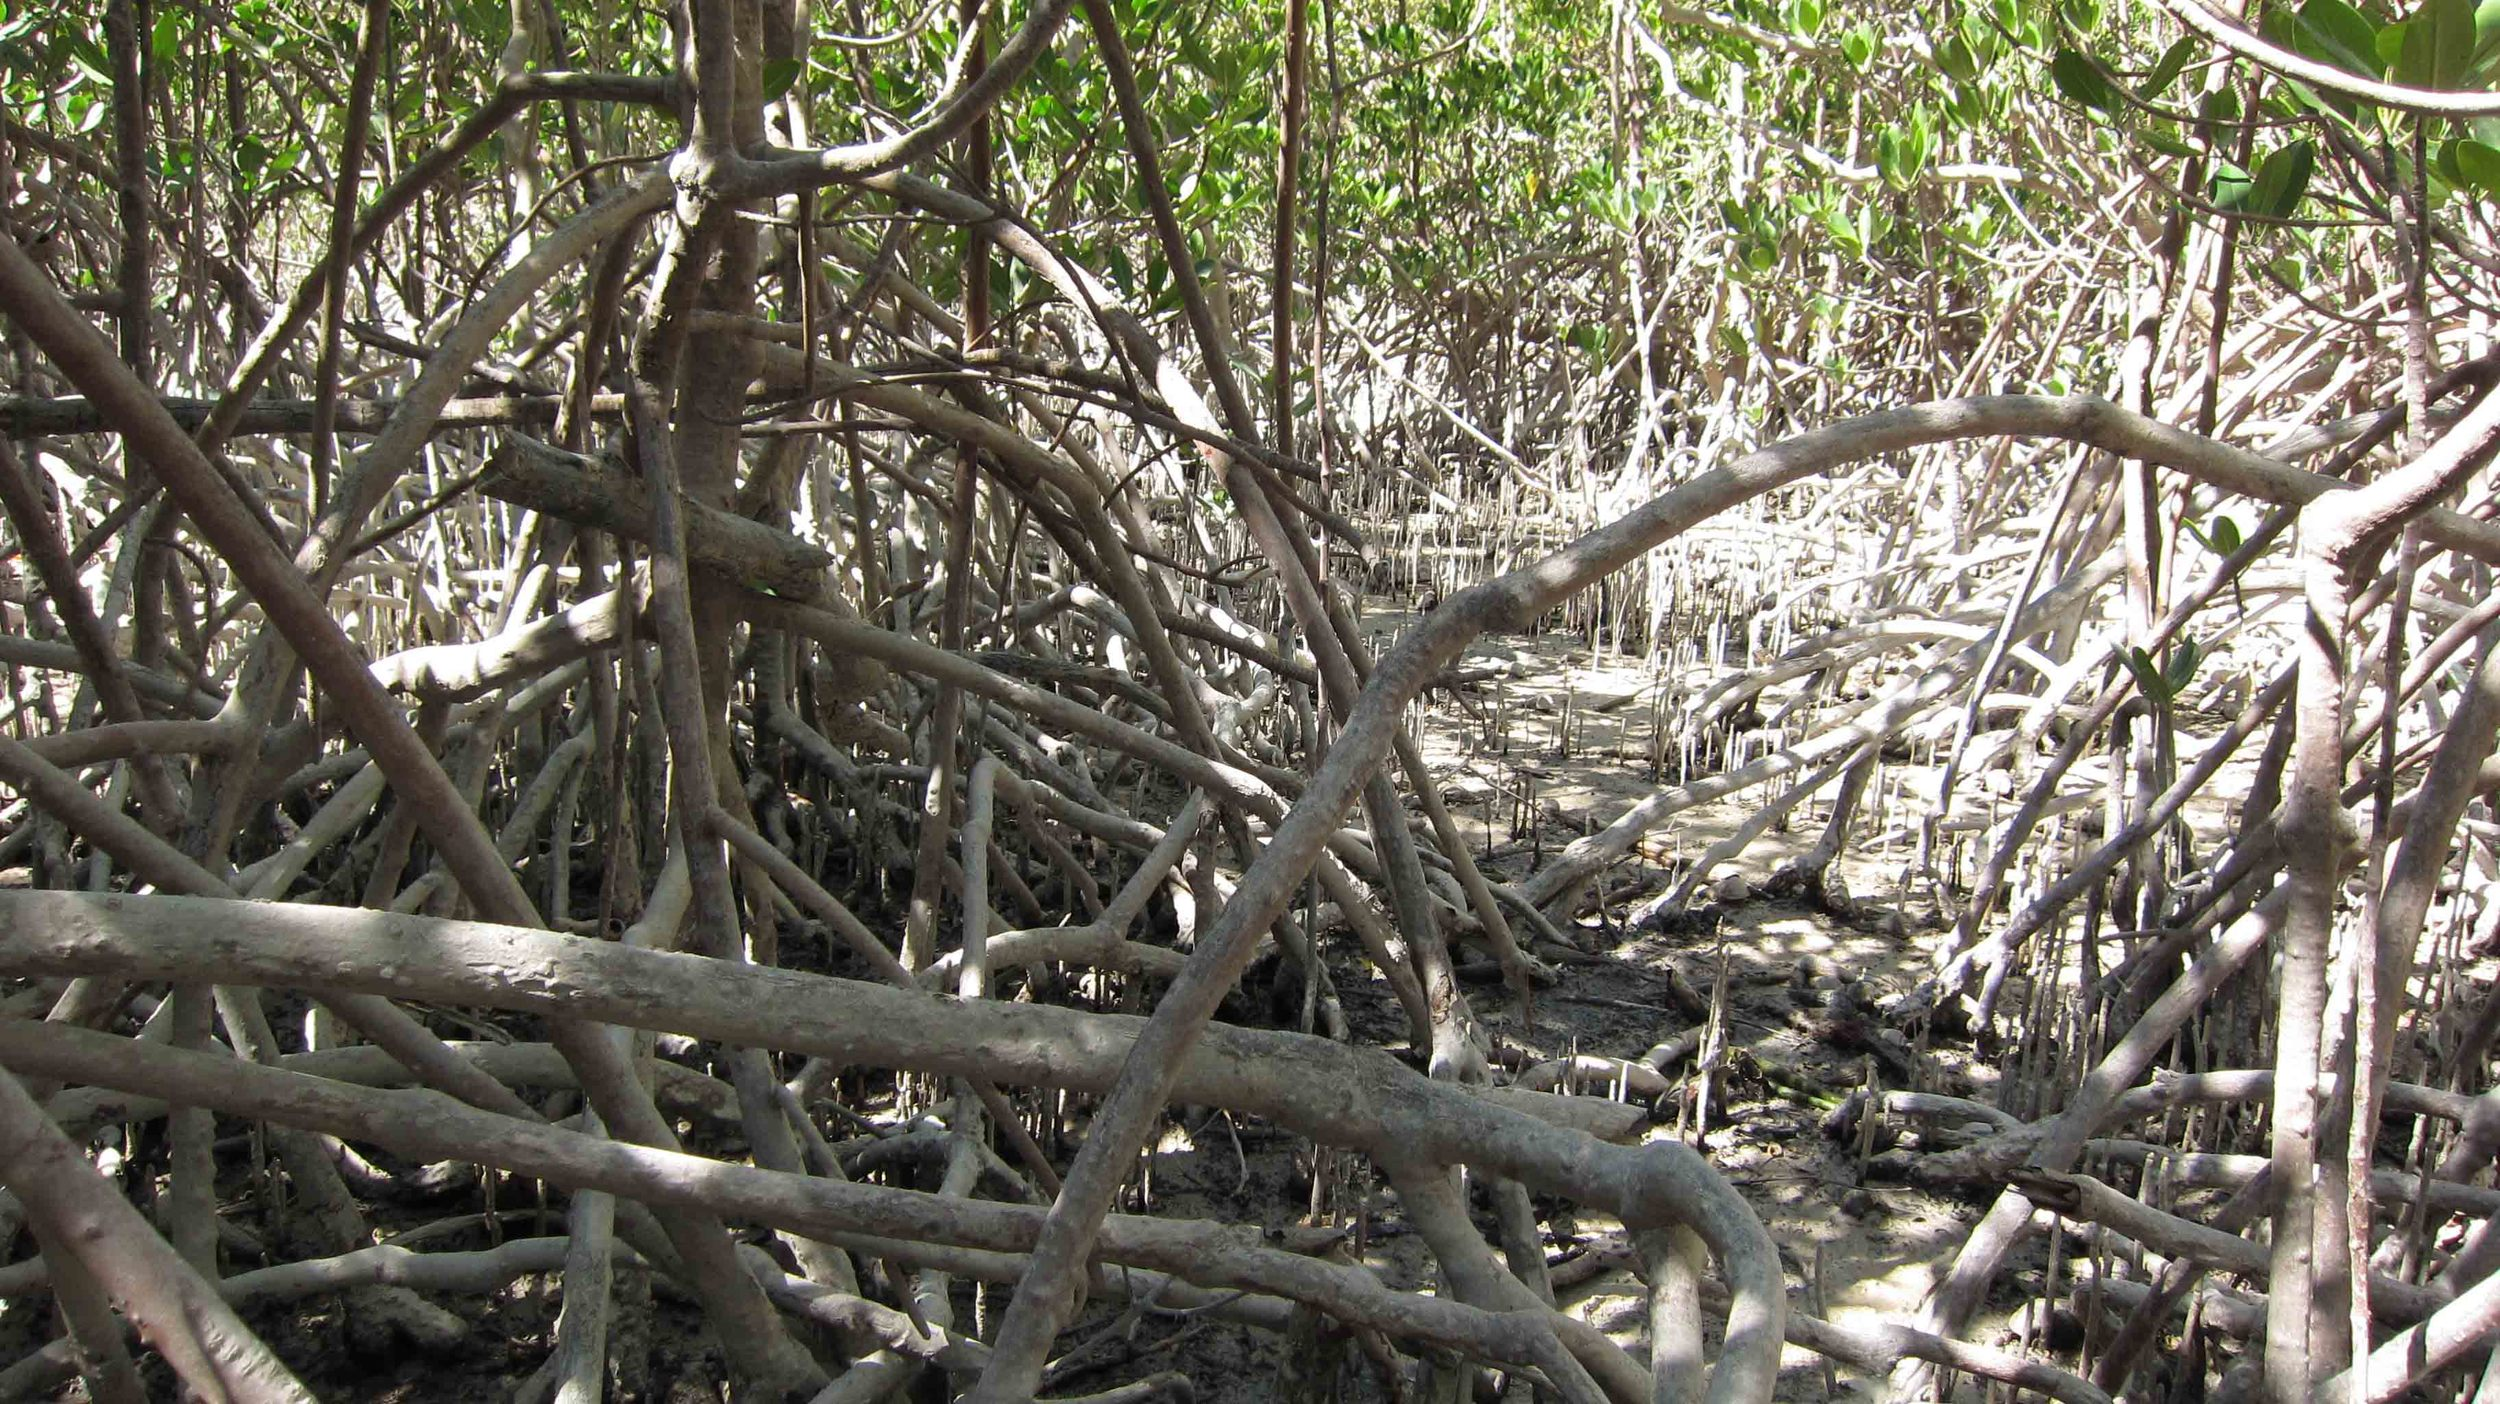 Could we make a method for increasing our depleted northern mangroves?